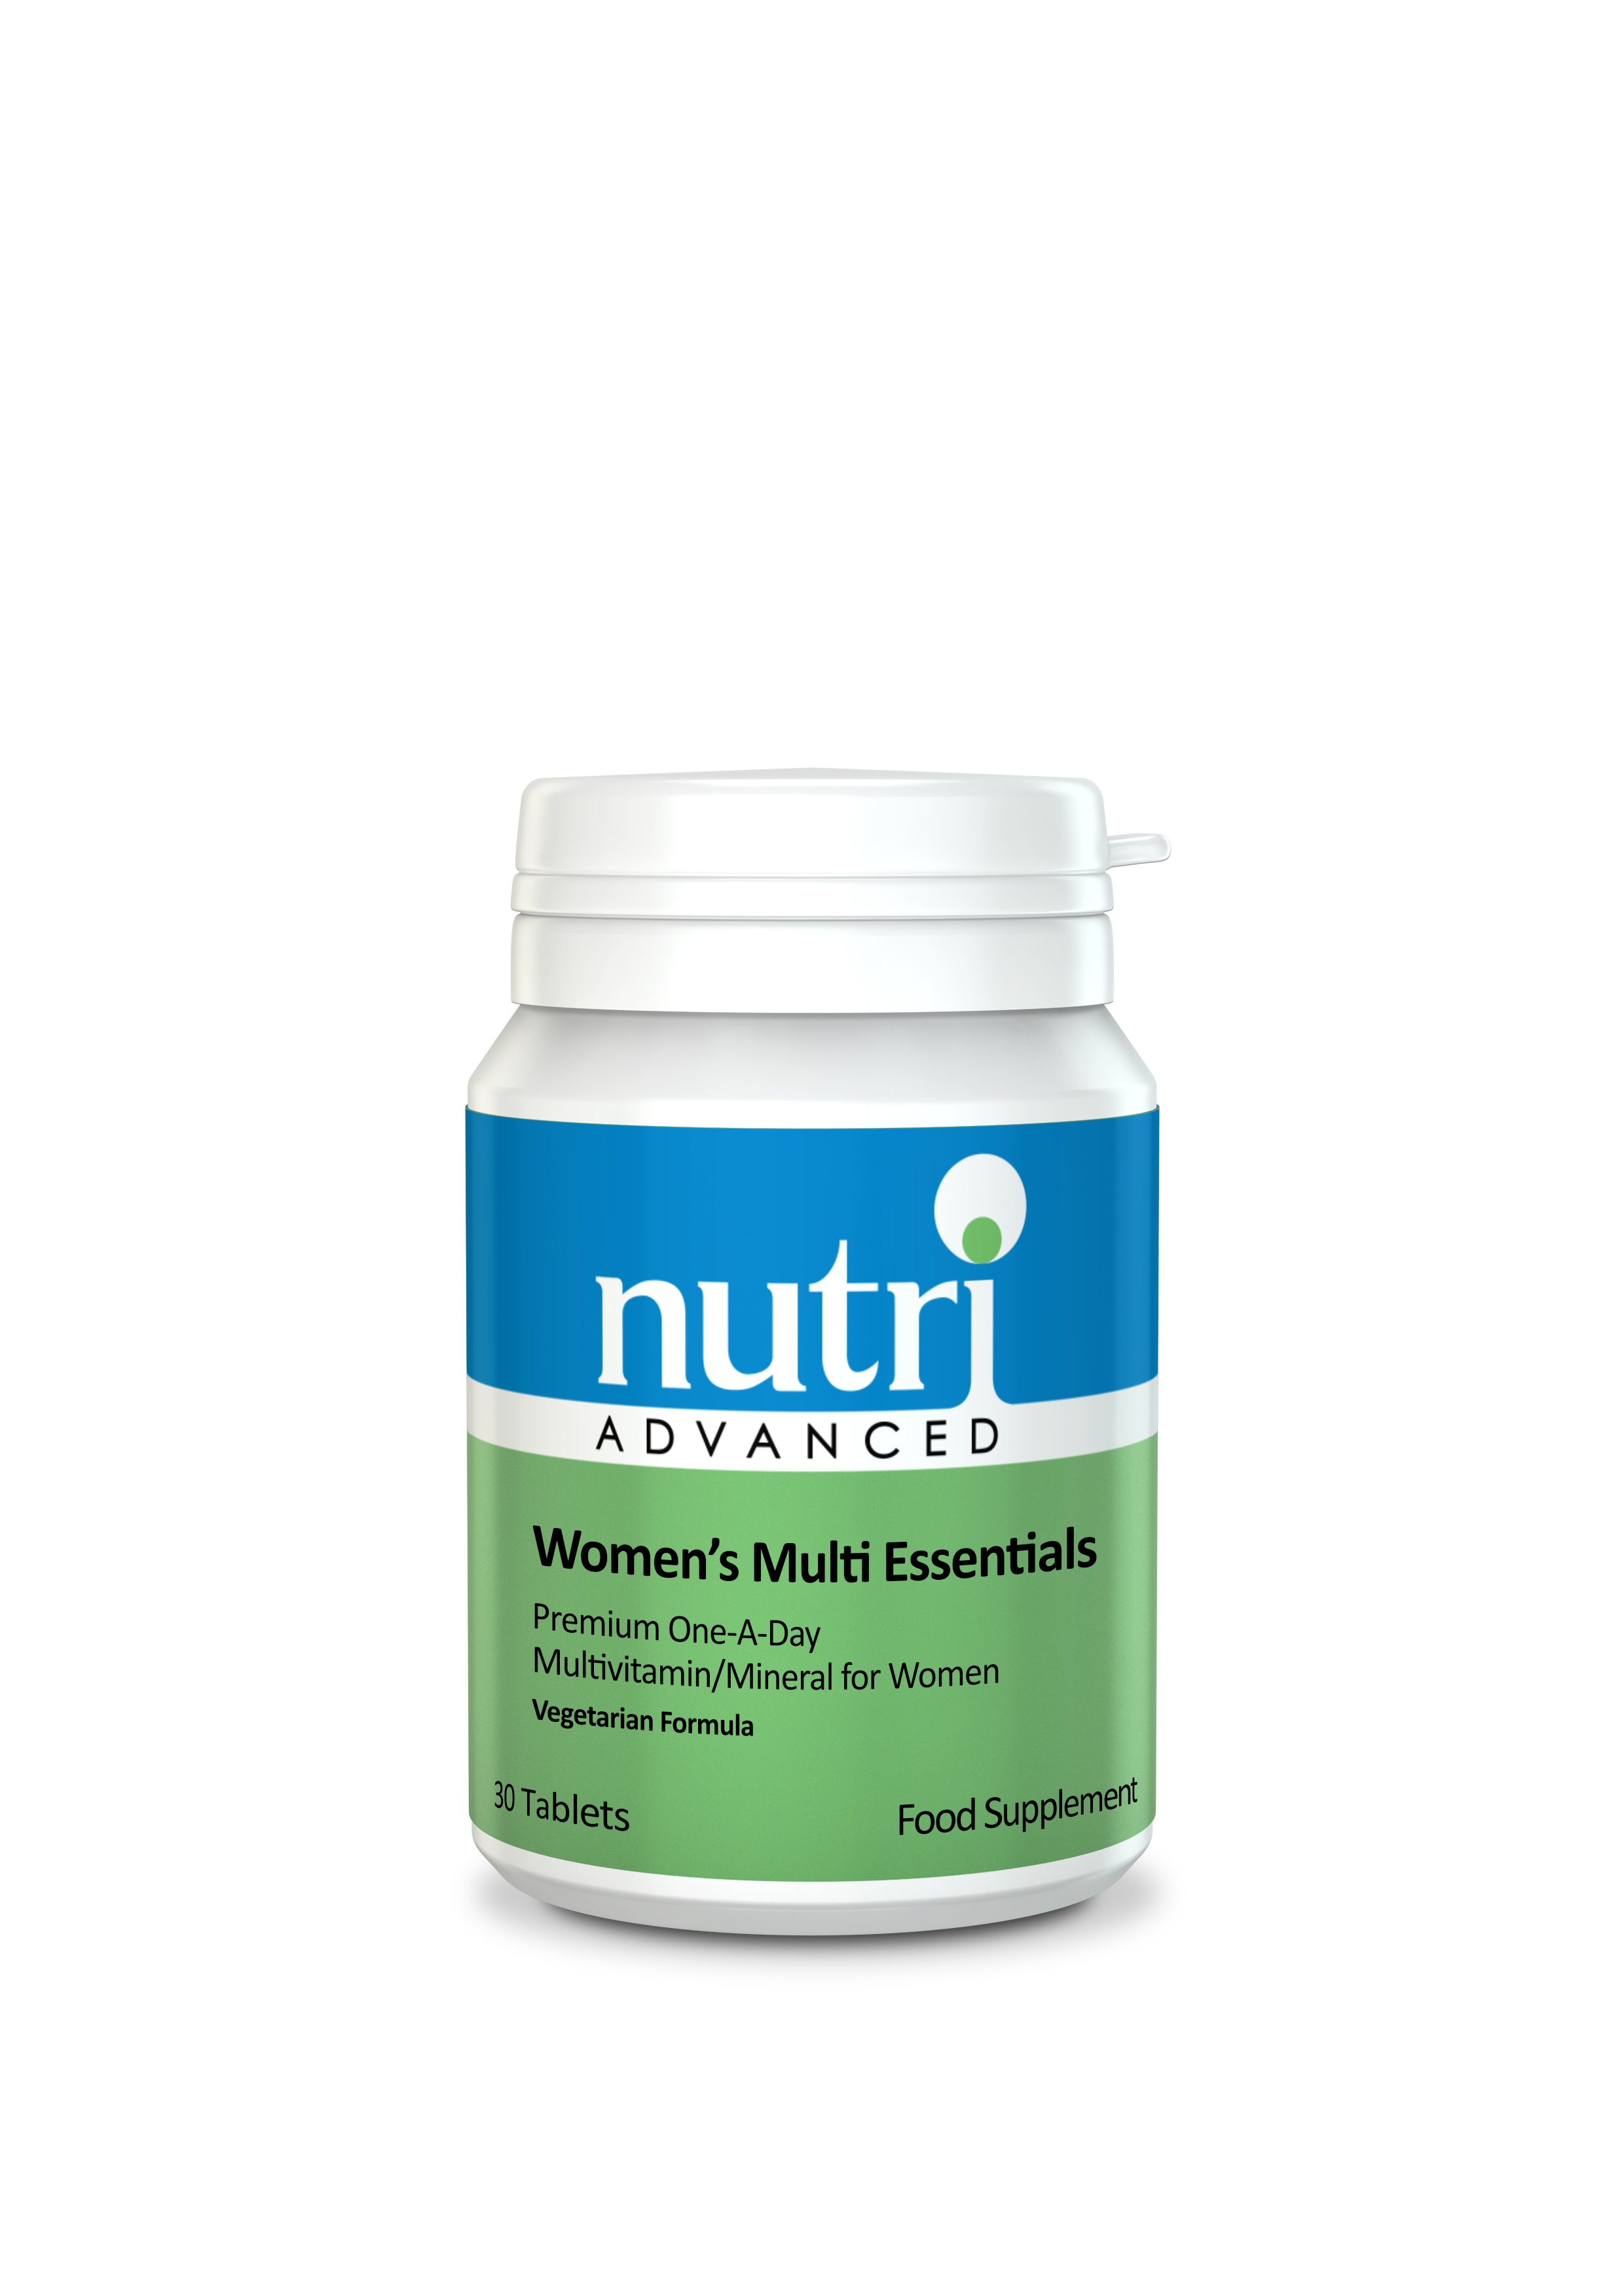 Nutri Advanced Women's Multi Essentials - tabs